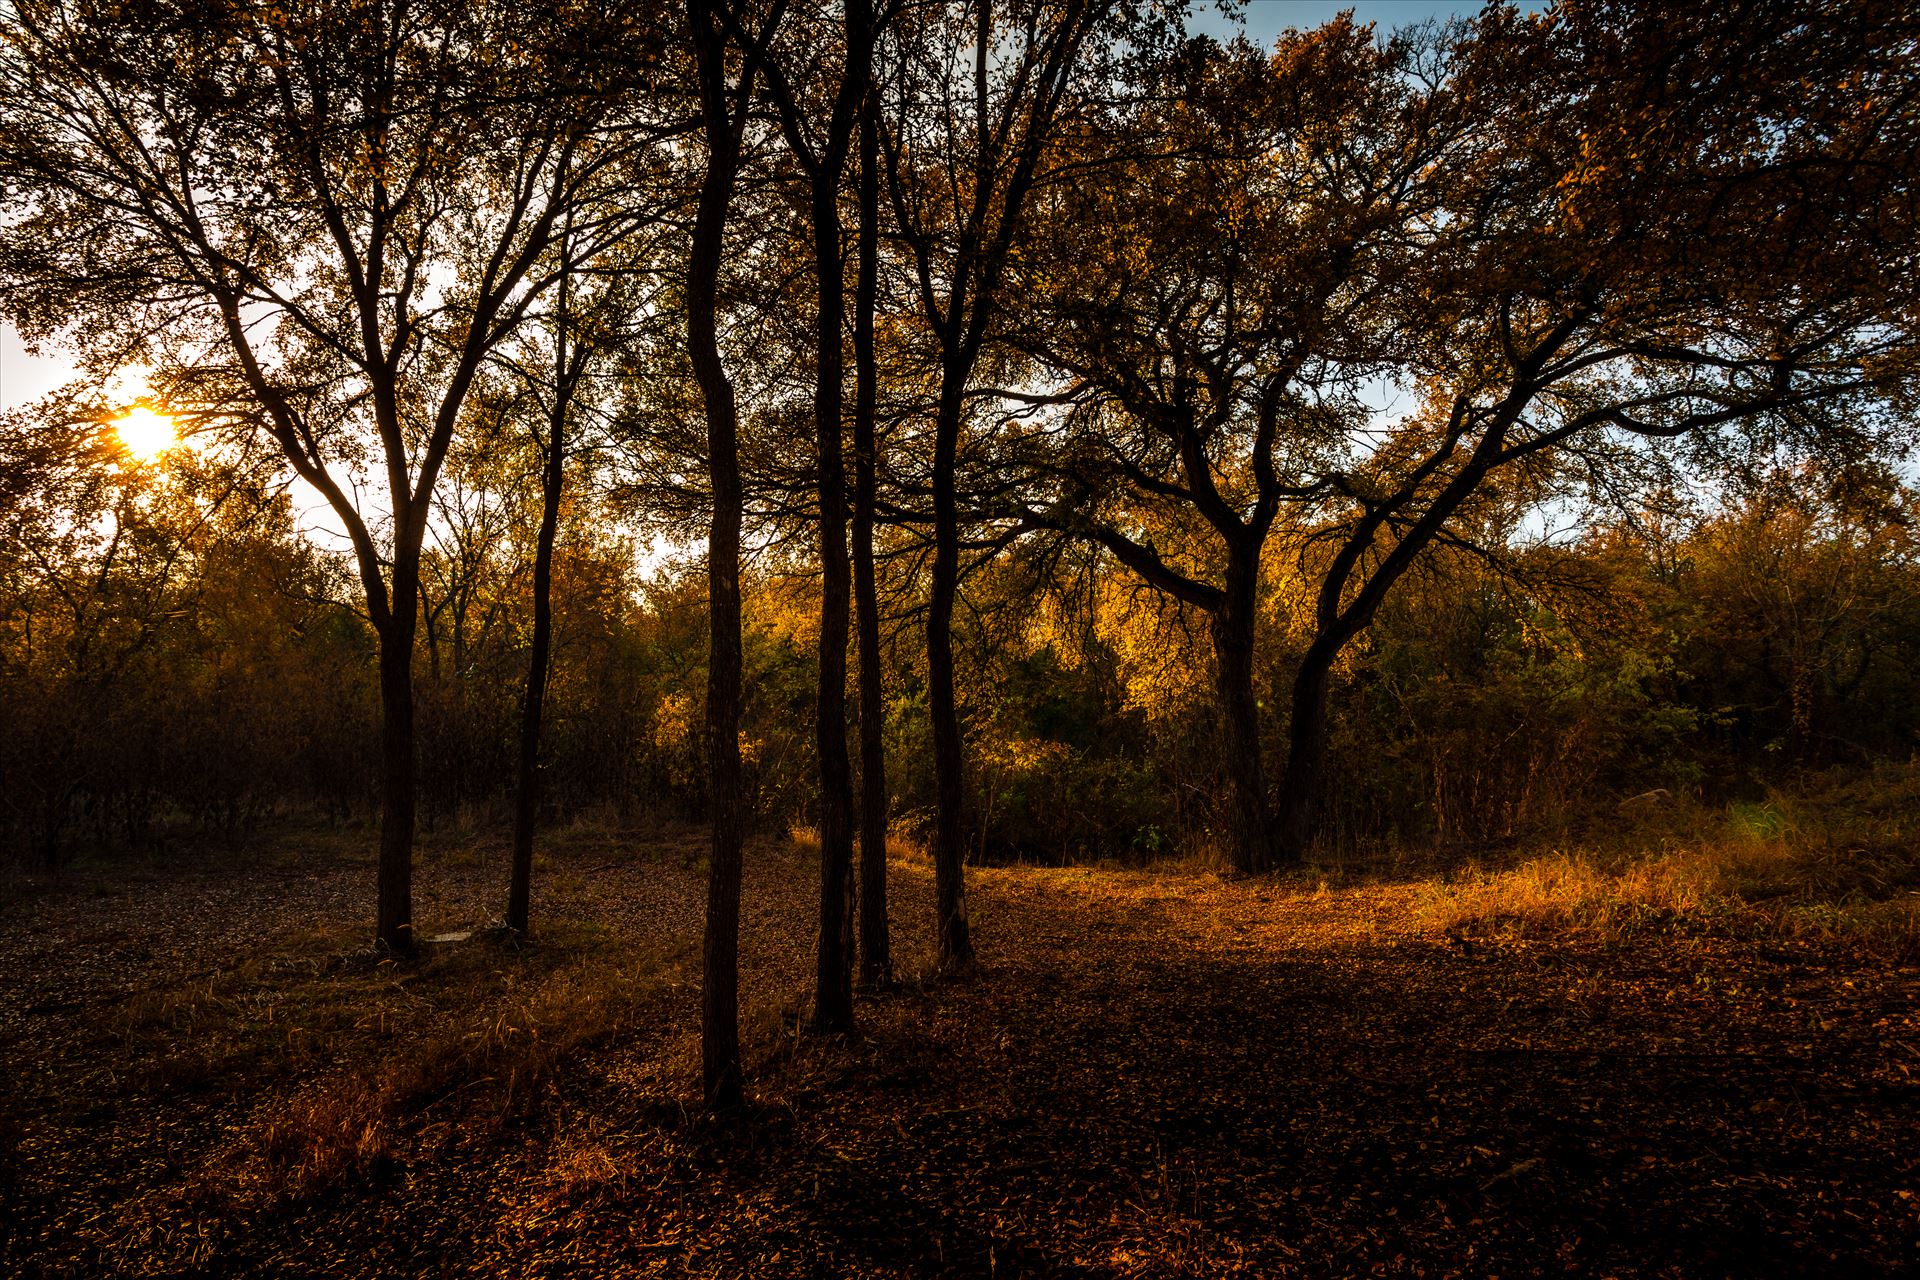 20171104_PepperCreek_014.jpg -  by Charles Smith Photography